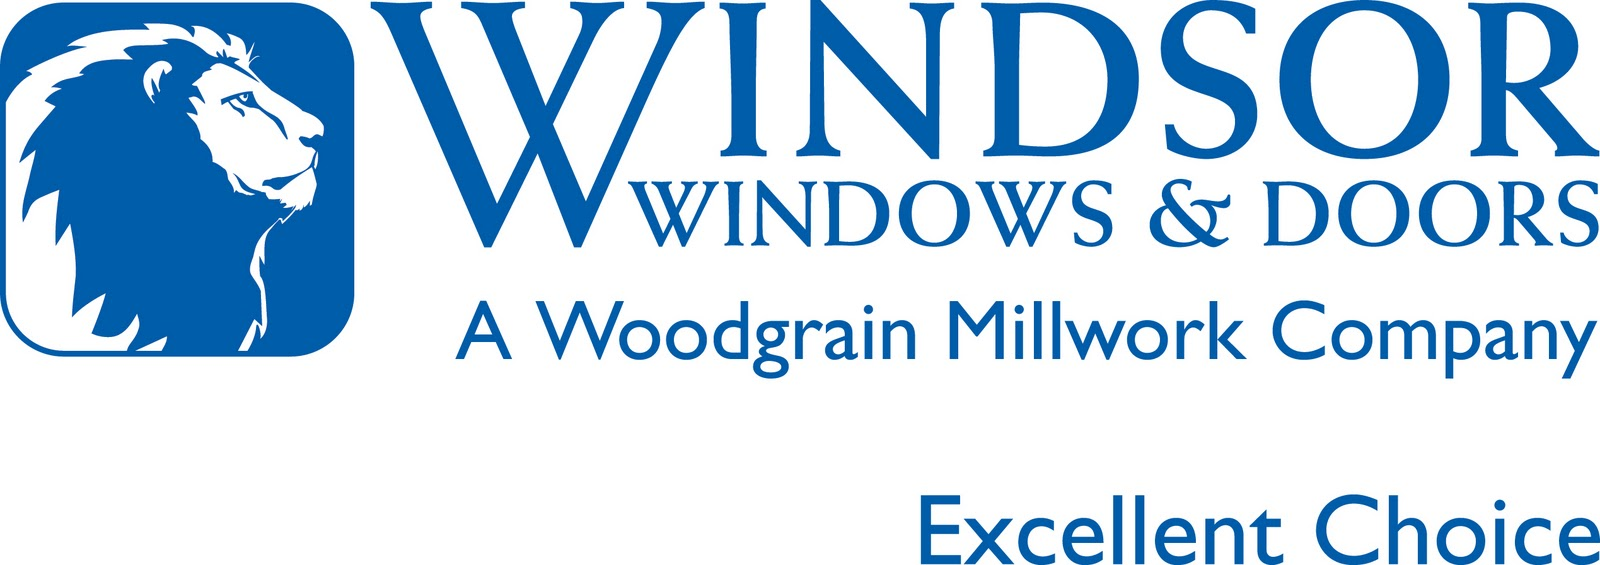 Statements Define Your Home Windsor Windows And Doors